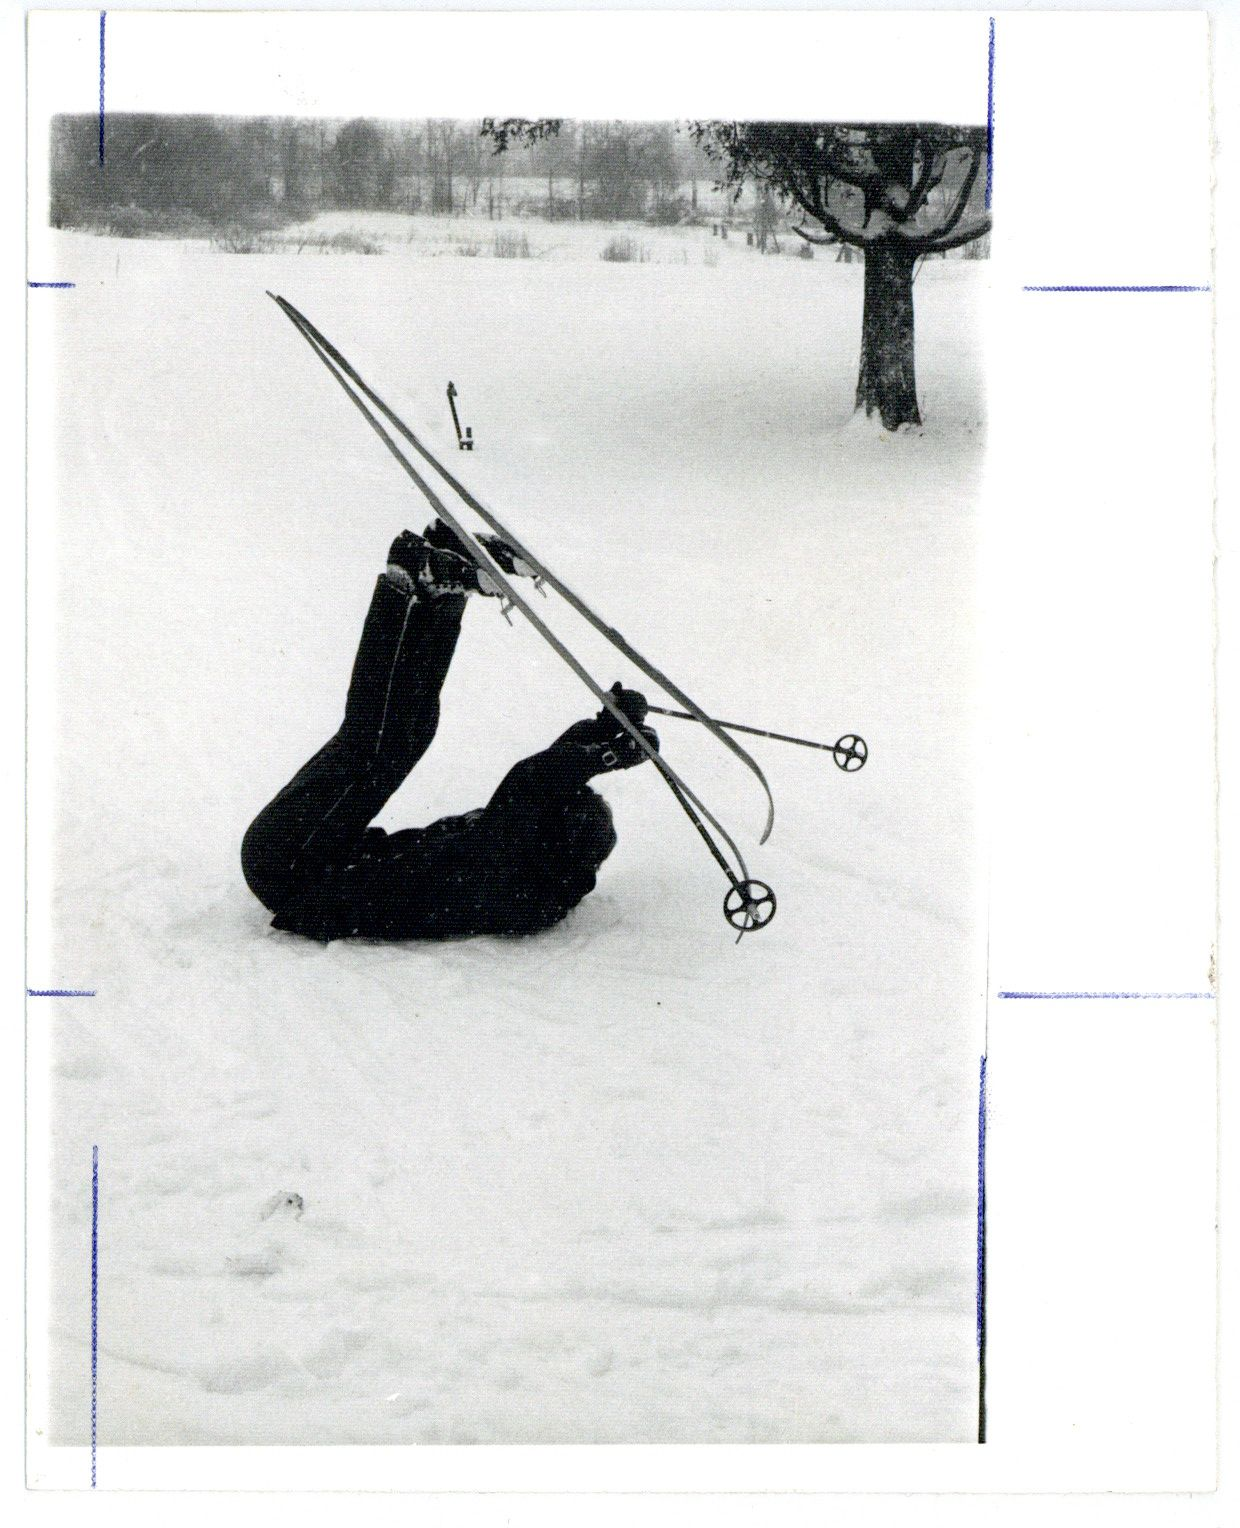 Image depicts a black and white photo of a person who has fallen down while skiing